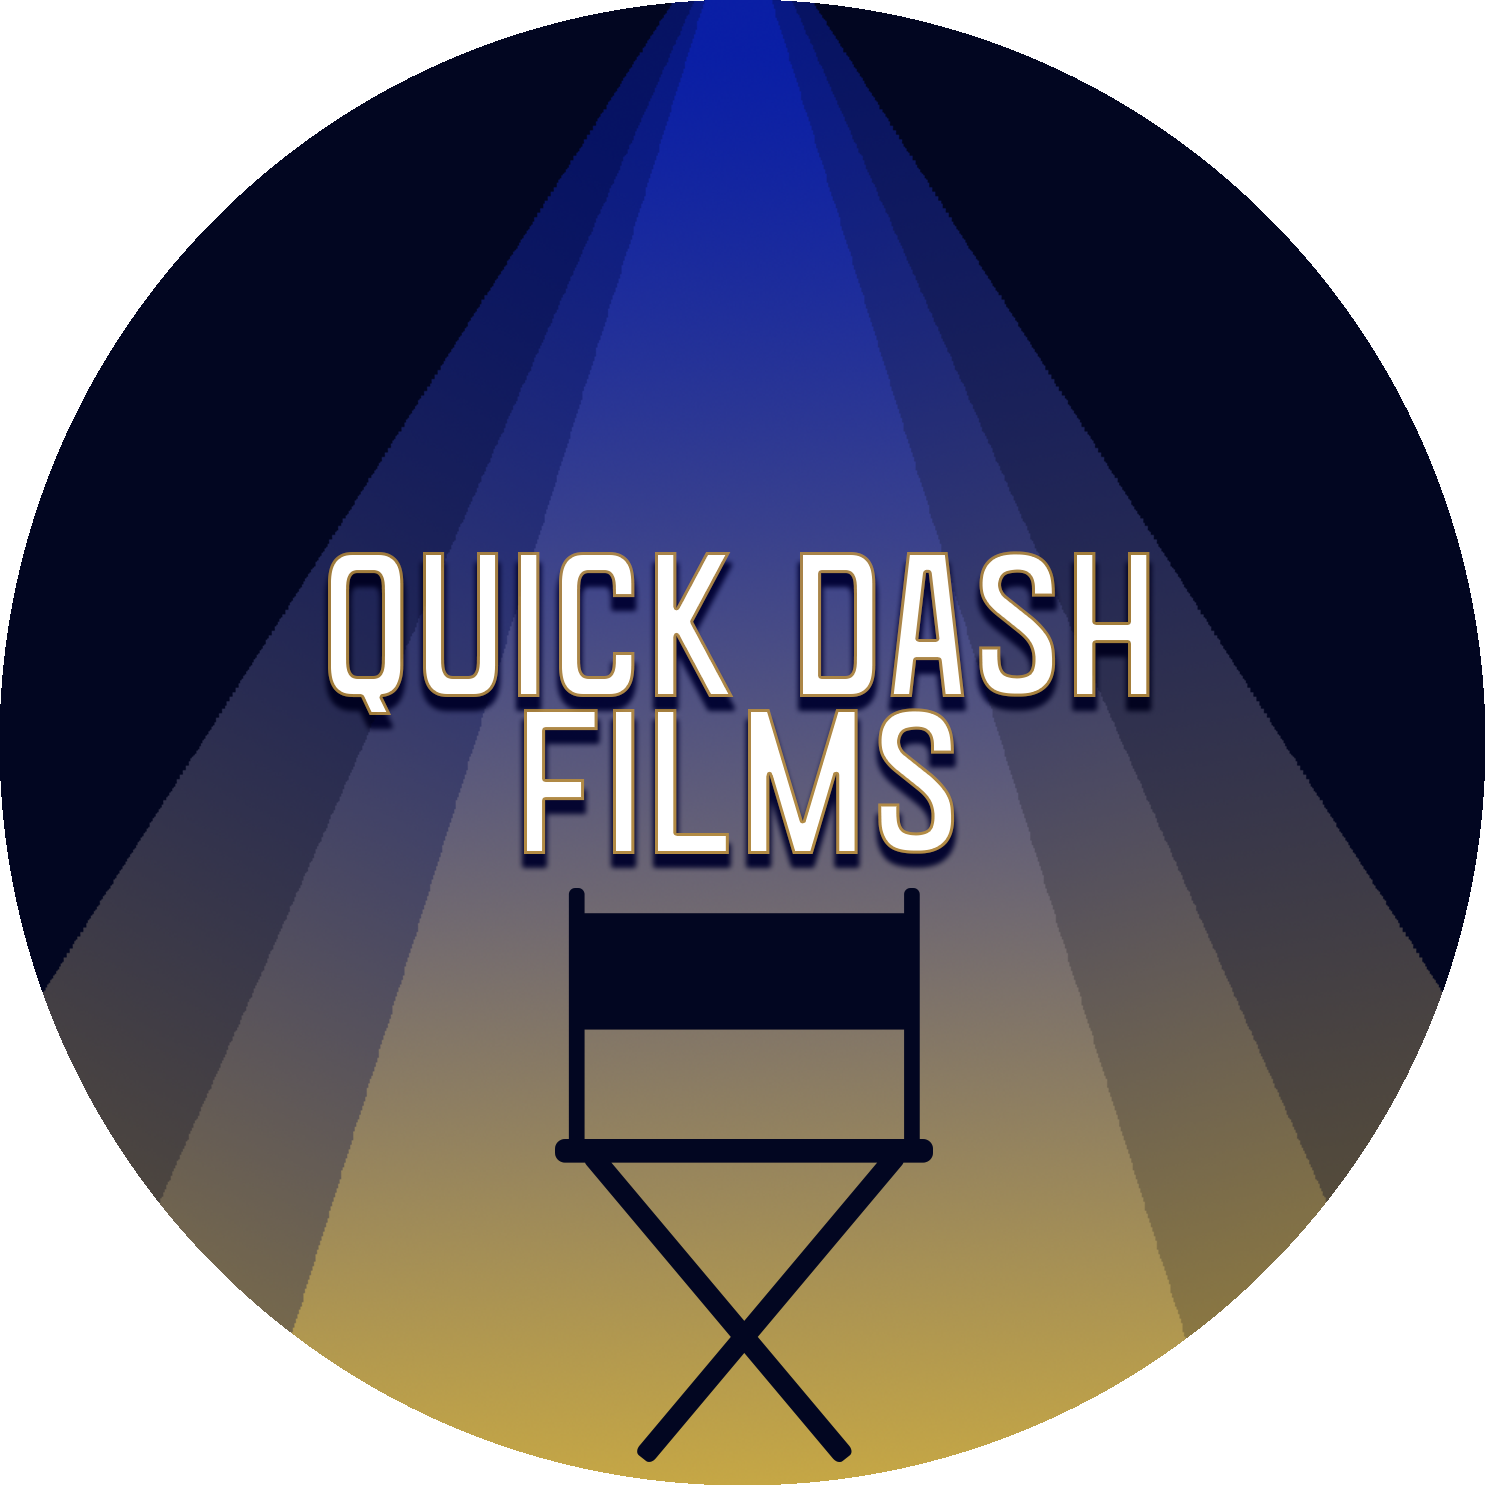 Reels &Commercial Work - A collection of my commercial work with my production company, Quick Dash Films. All work is directed and edited by James Kendall.Demo reels coming soon!